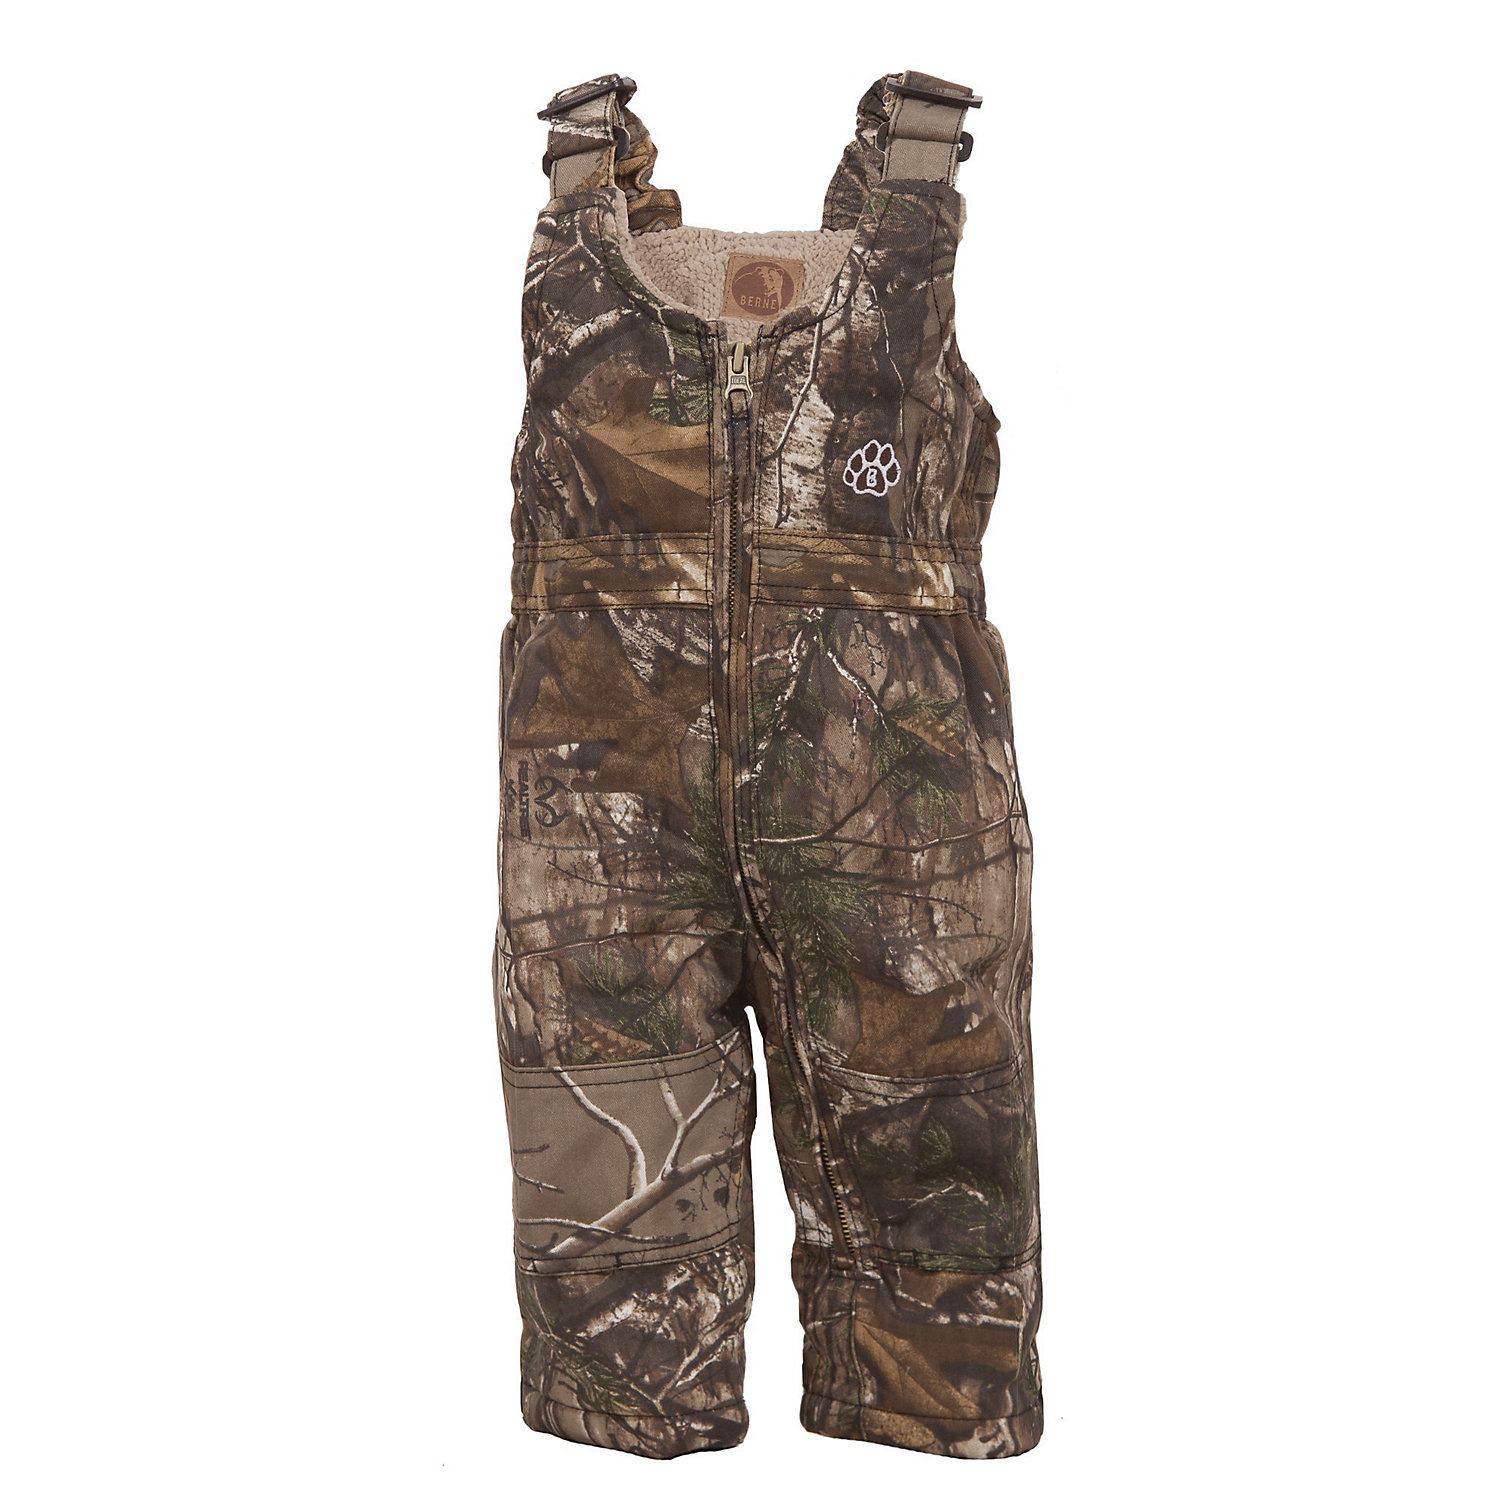 Infant Yearling Bib Overall